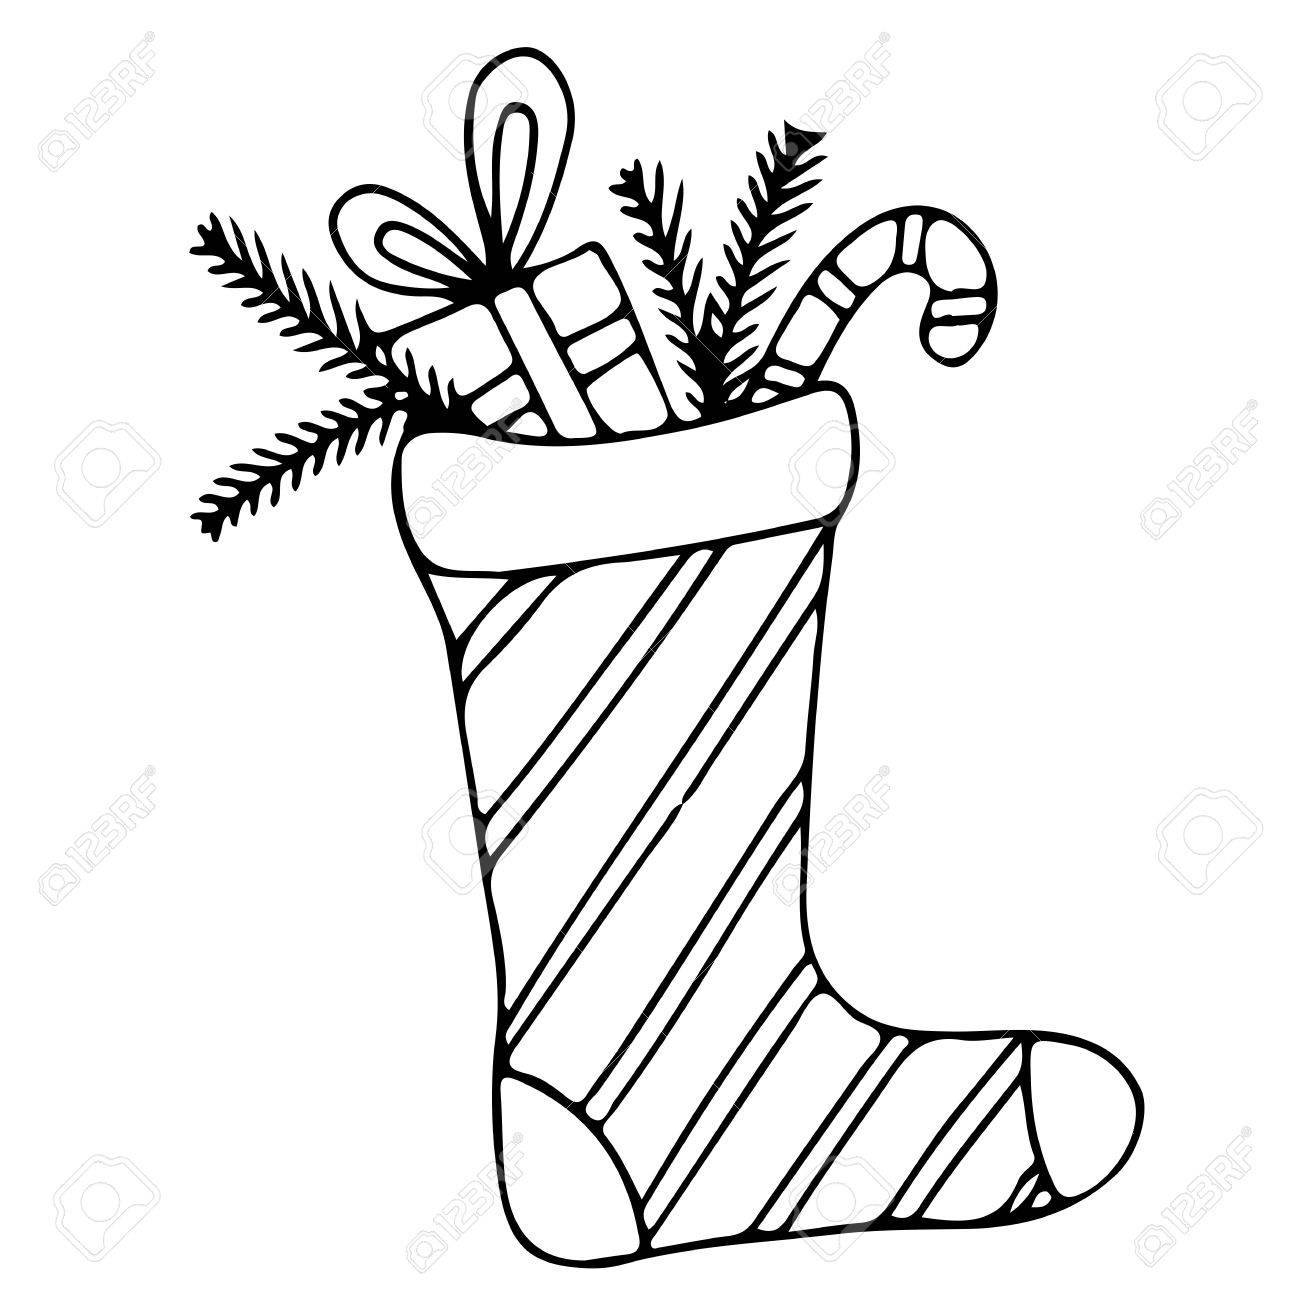 Christmas Stocking Line Drawing.Christmas Stocking With Candy And Gift Mono Color Black Line